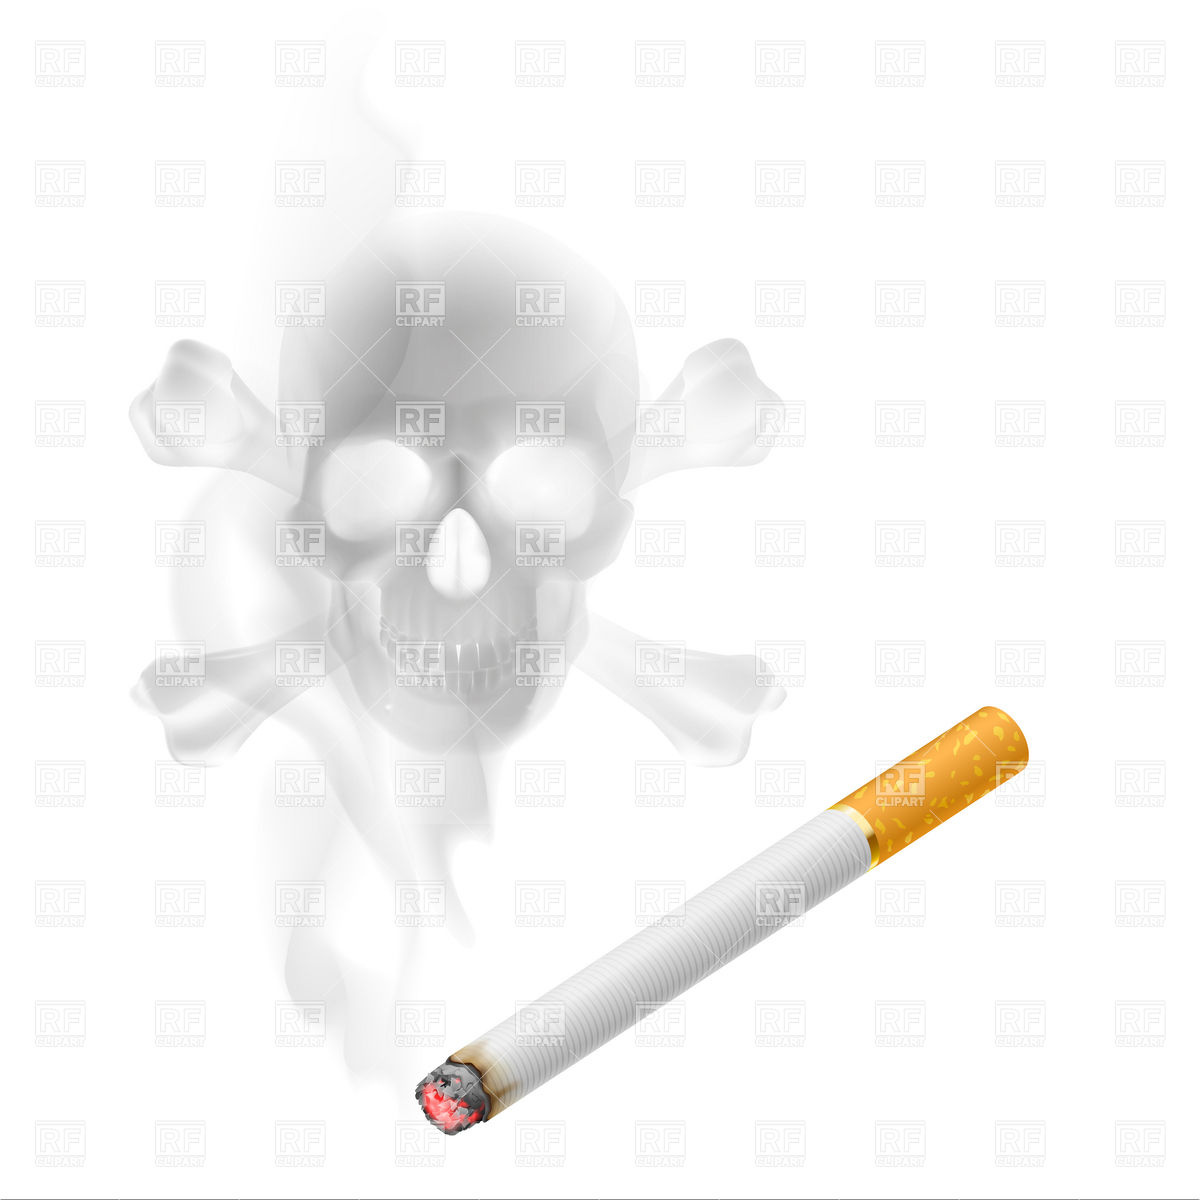 Cigarette And Skull Of Smoke Download Royalty Free Vector Clipart